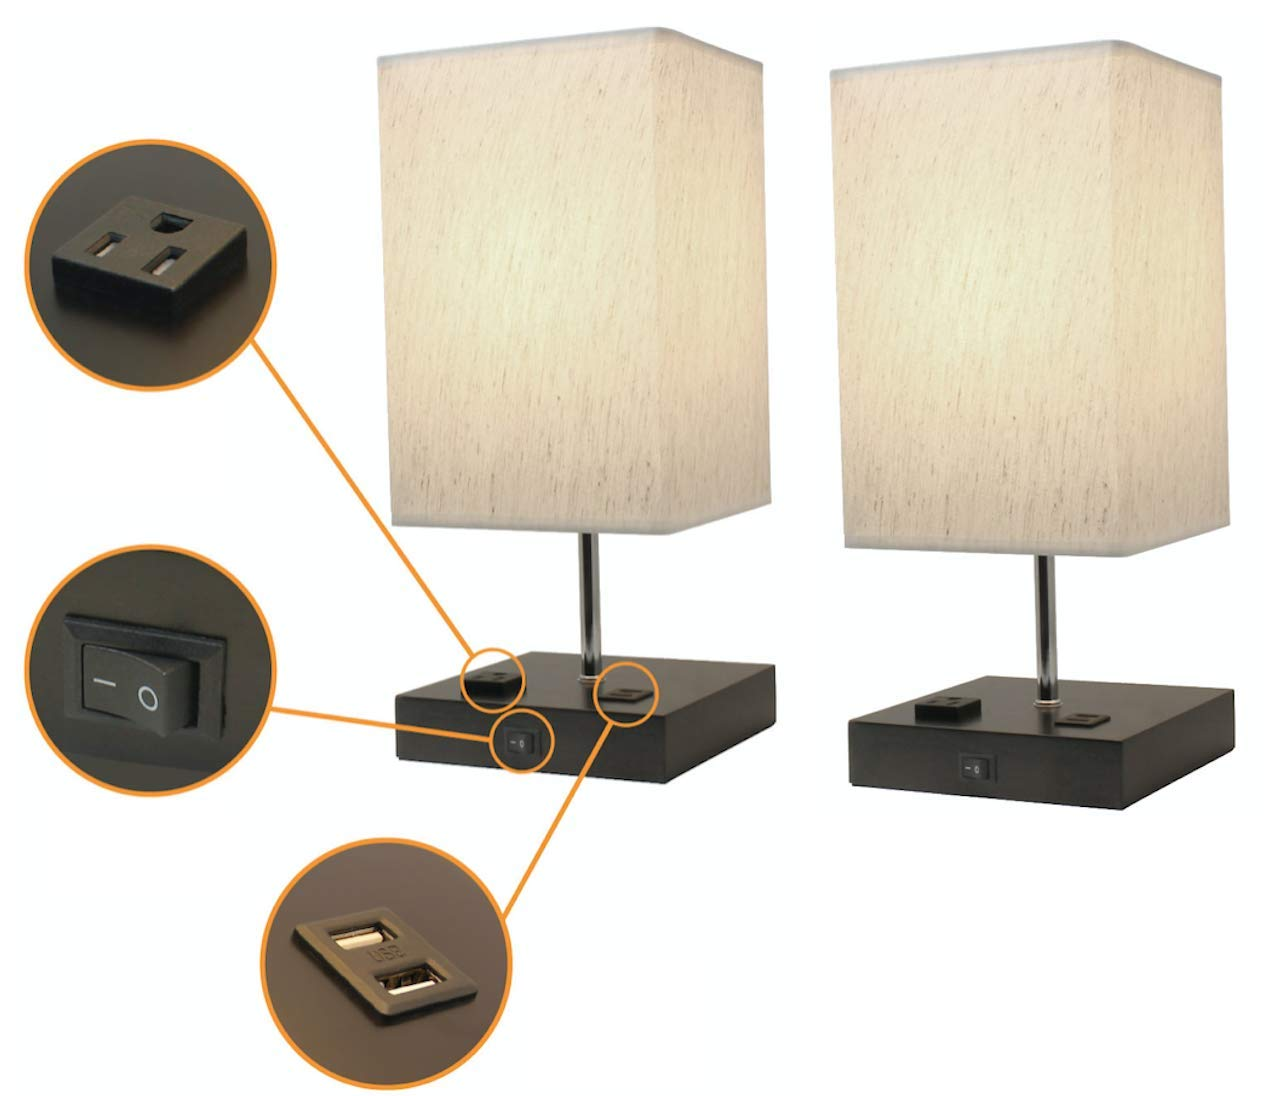 Paradis Lamp with 2 USB Ports & 1 Power Outlet. Modern Design, Wood Base with Fabric Shade. Great Desk Lamp & Nightstand Lamp, Charges Electronics (Set of 2)